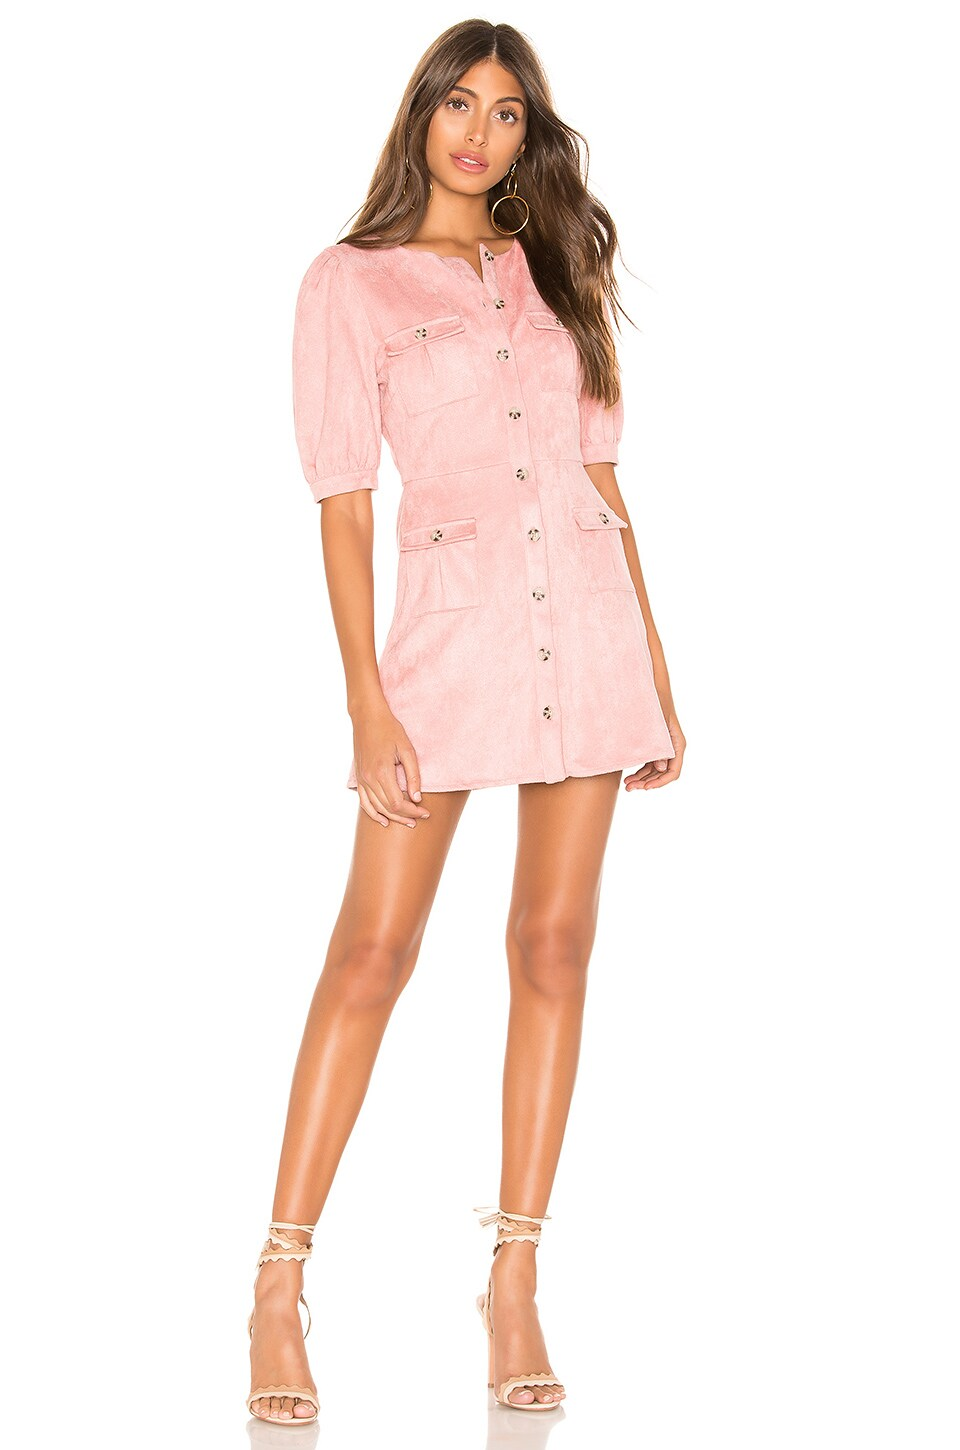 MAJORELLE Bennett Mini Dress in Pink Mauve